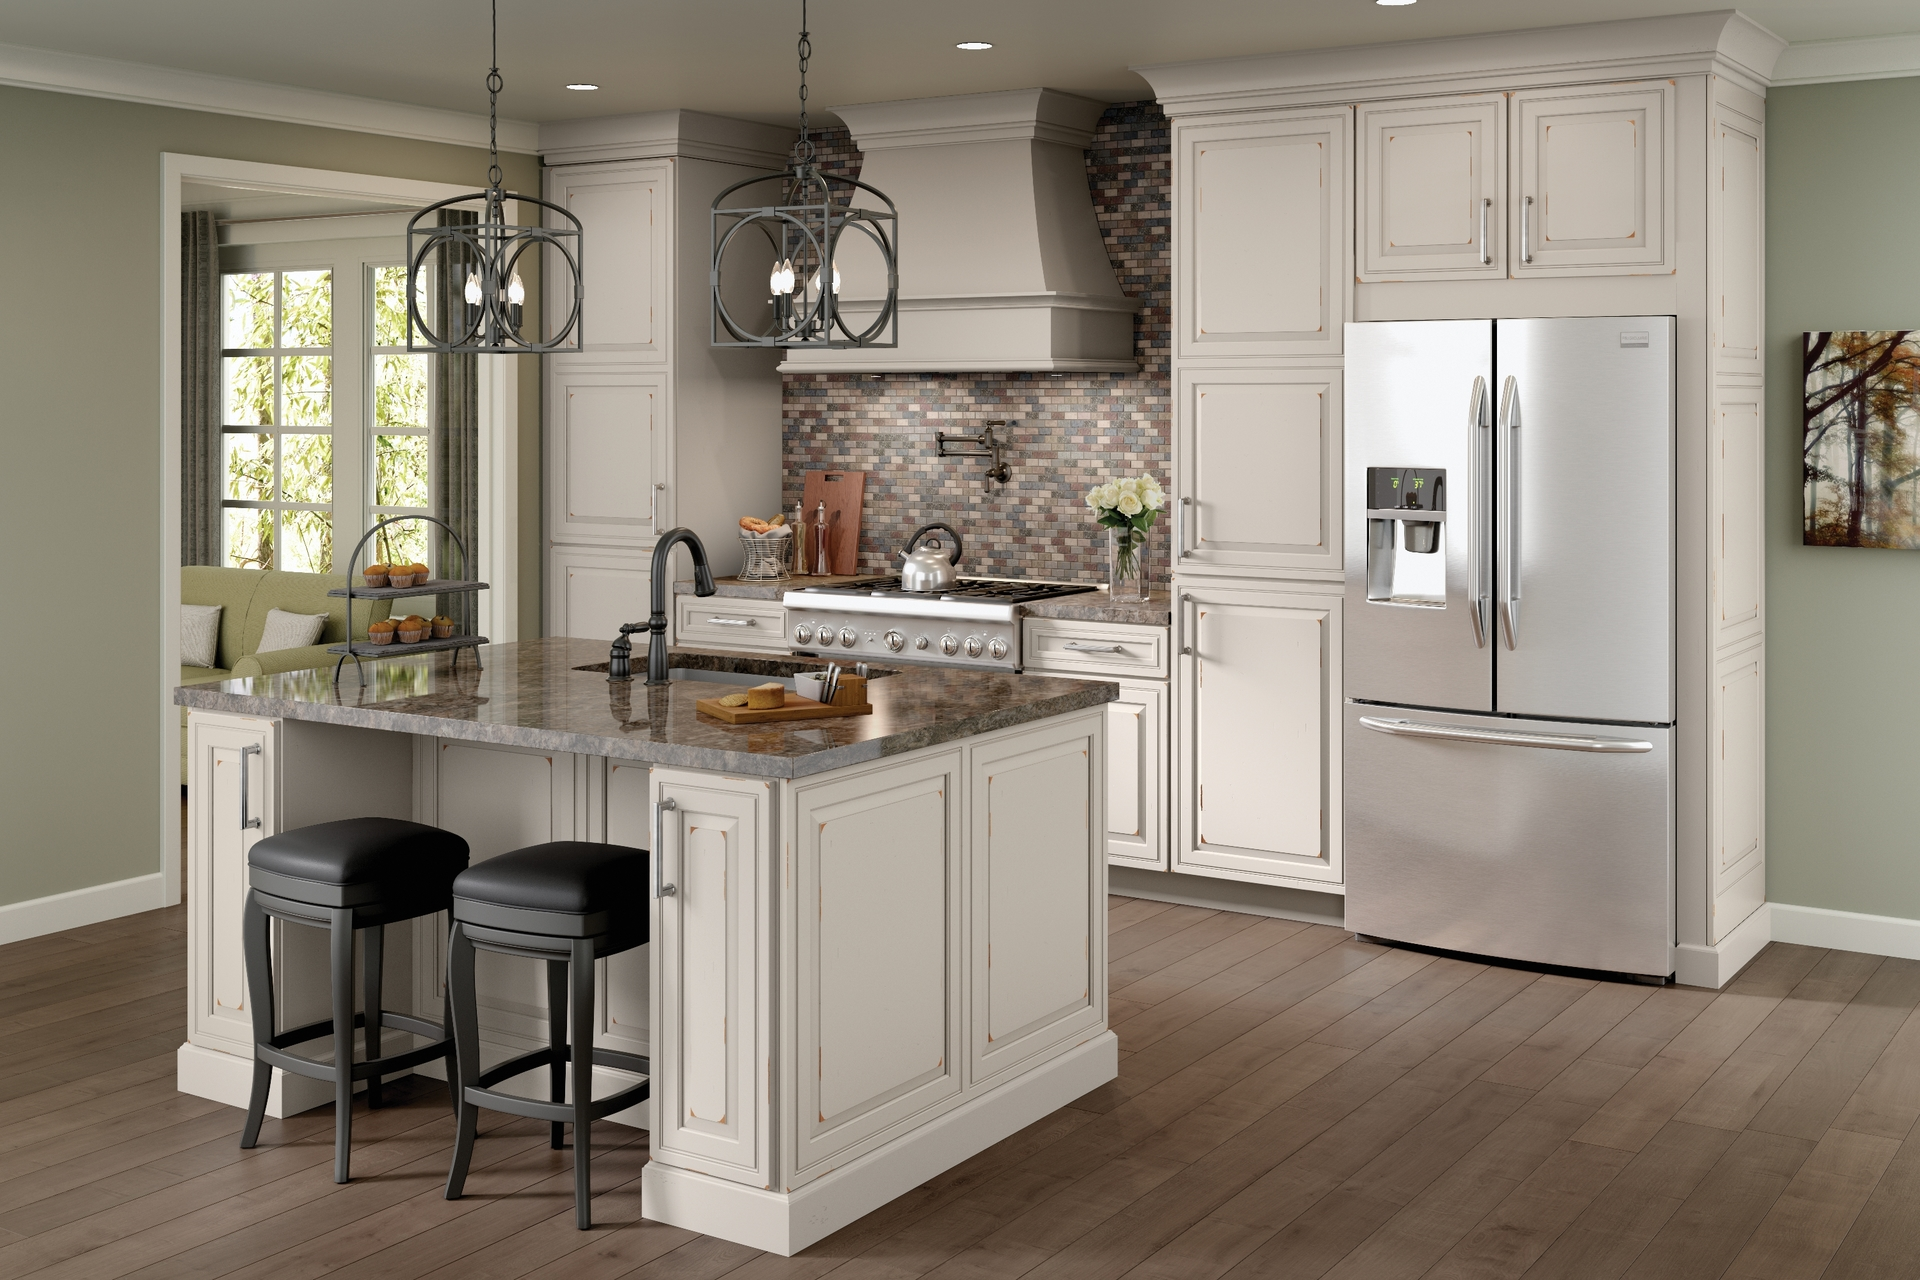 White Kitchen Cabinets Menards Cardell Kitchen Cabinets Captsone Cherry In Distressed